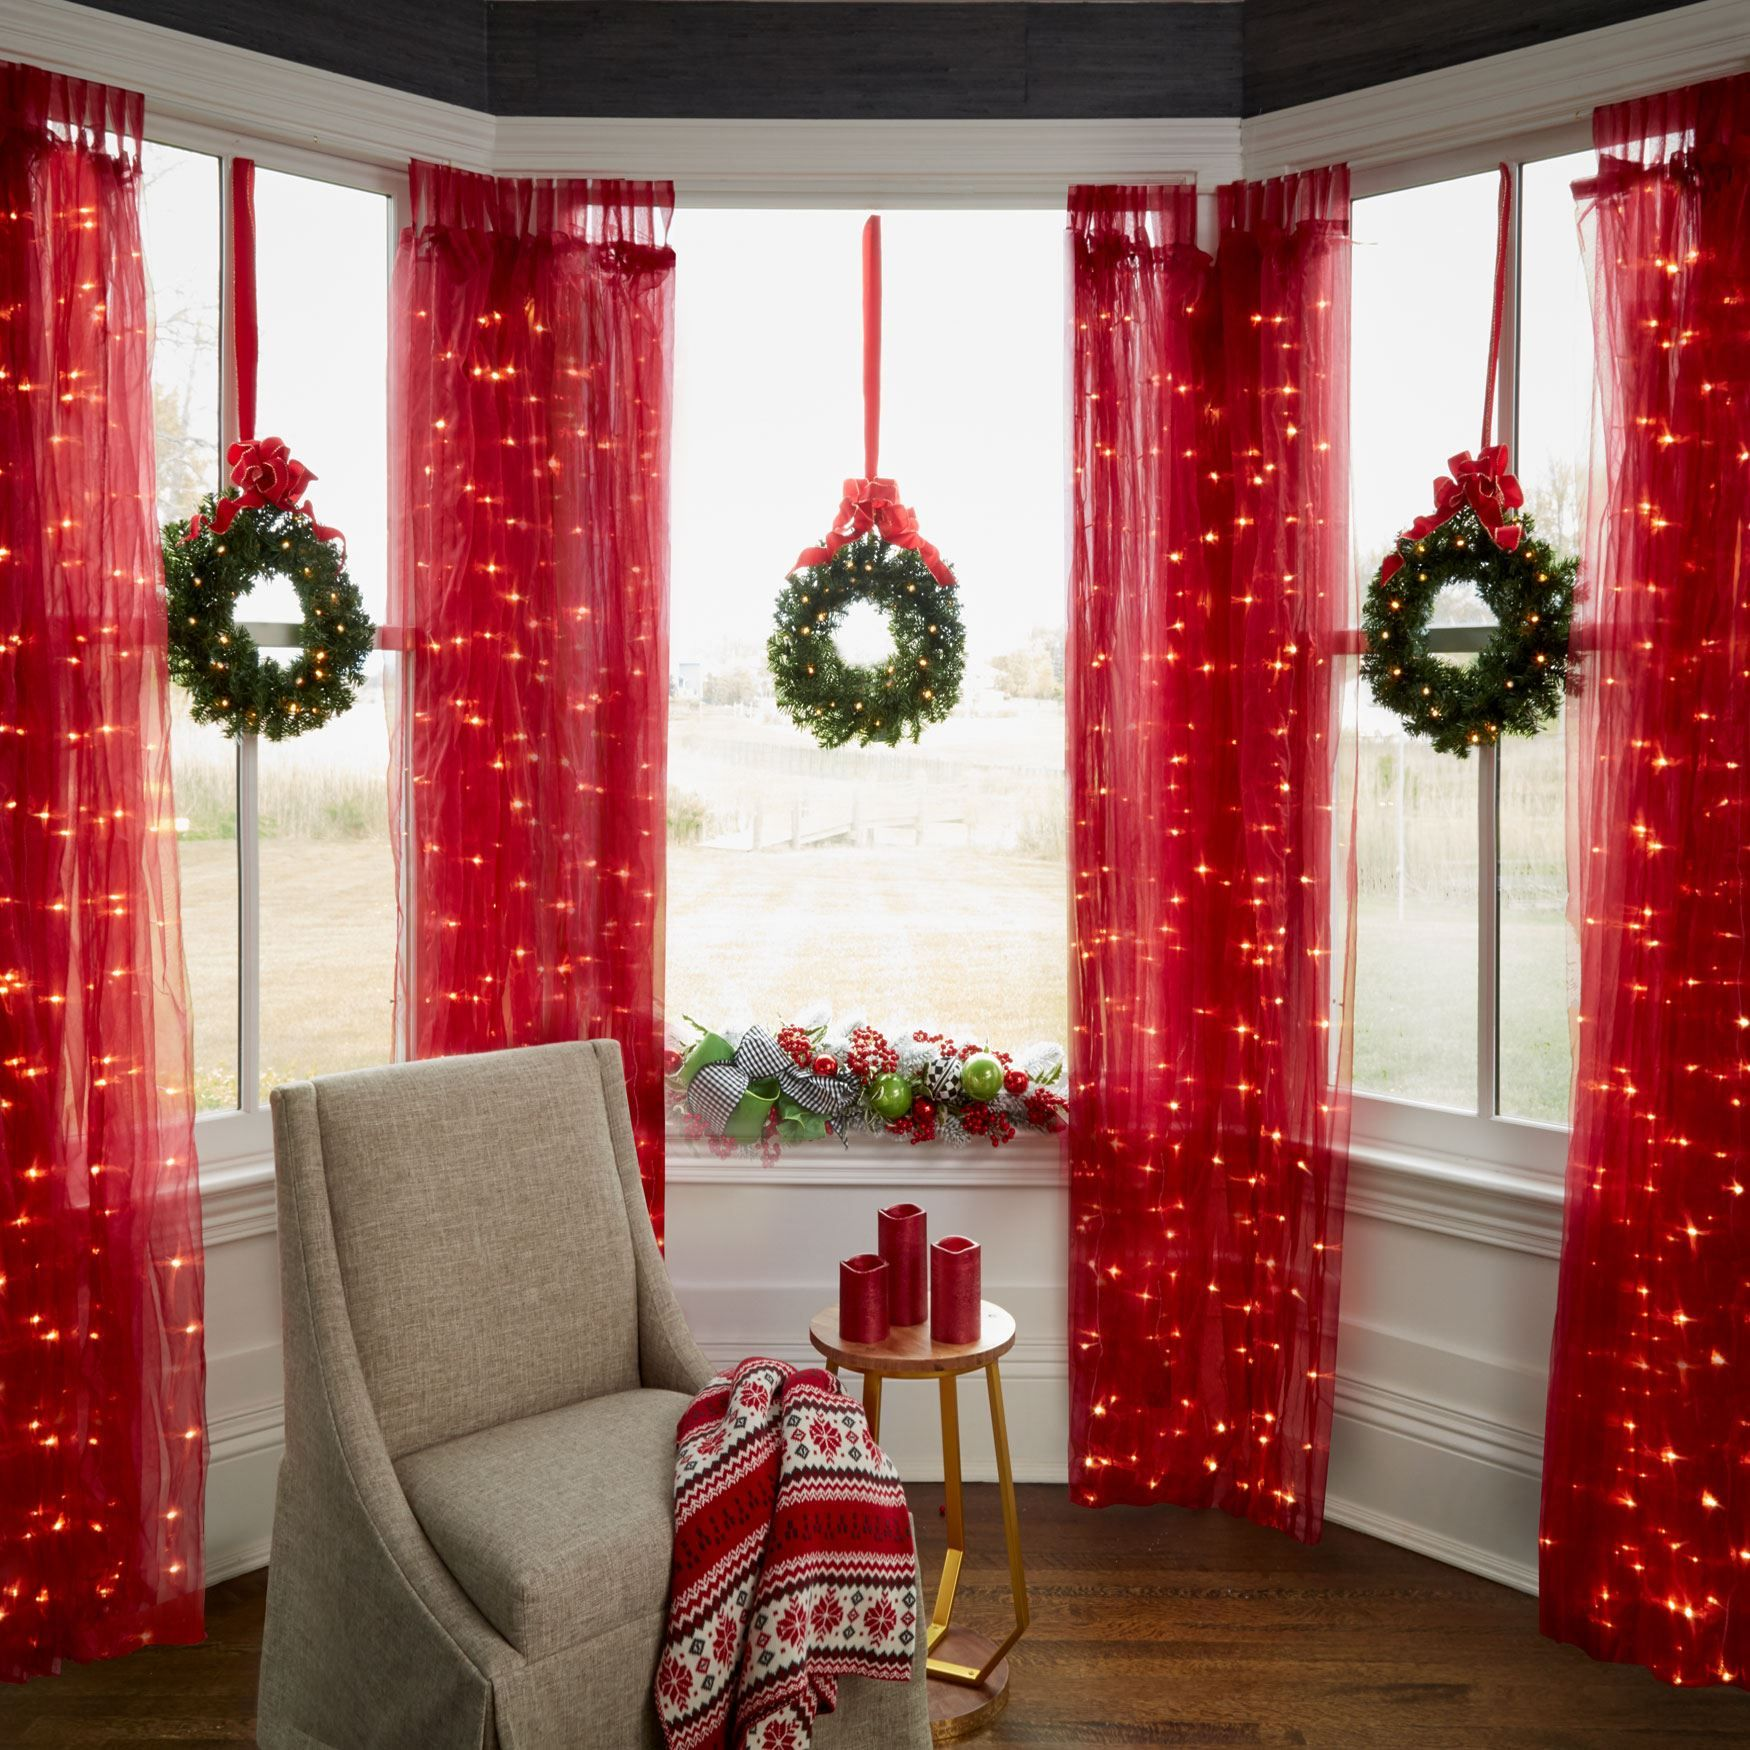 5 Curtain Ideas For Bay Windows Curtains Up Blog: A Festive Trio Of Mini Christmas Wreaths, Each Gleaming